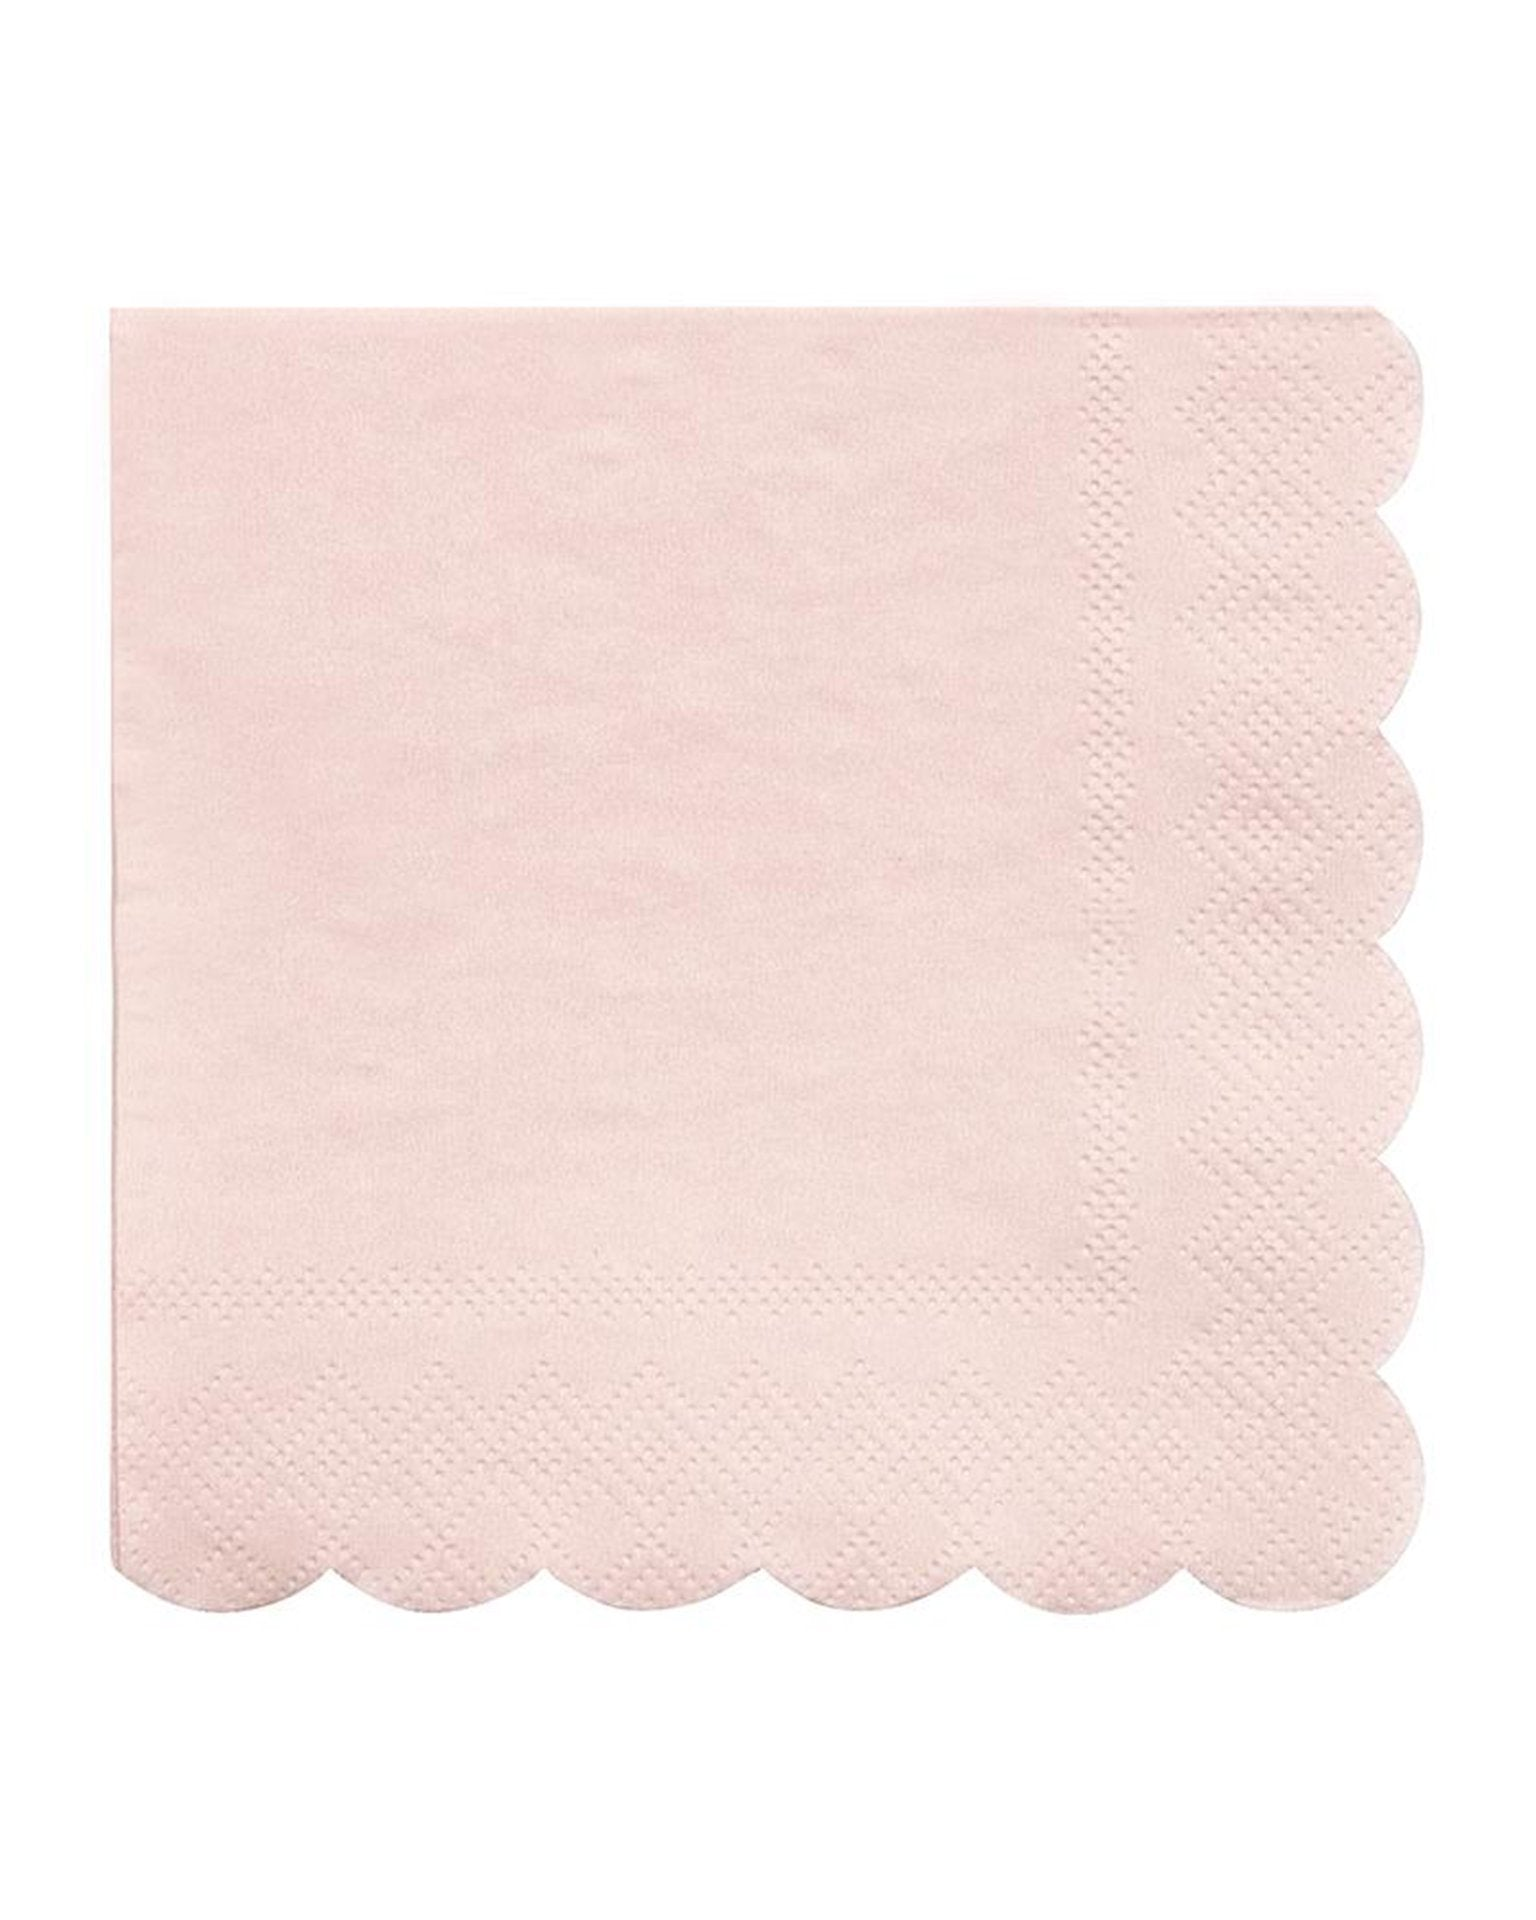 Little meri meri paper+party small pale pink napkins